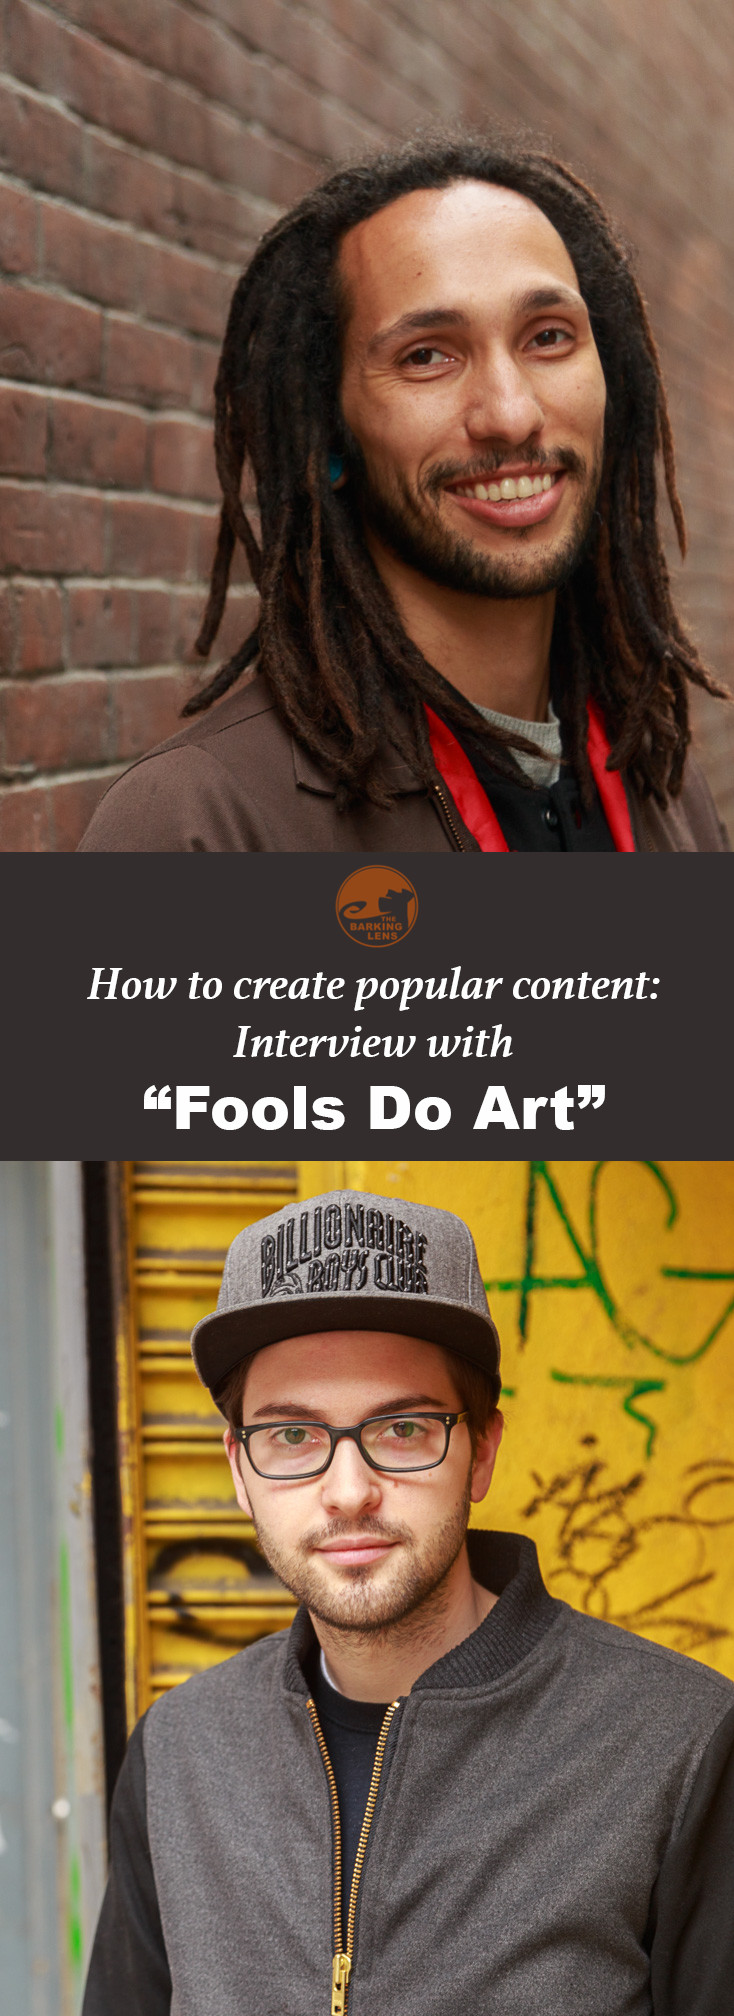 Creating Popular Content: Interview with Fools Do Art